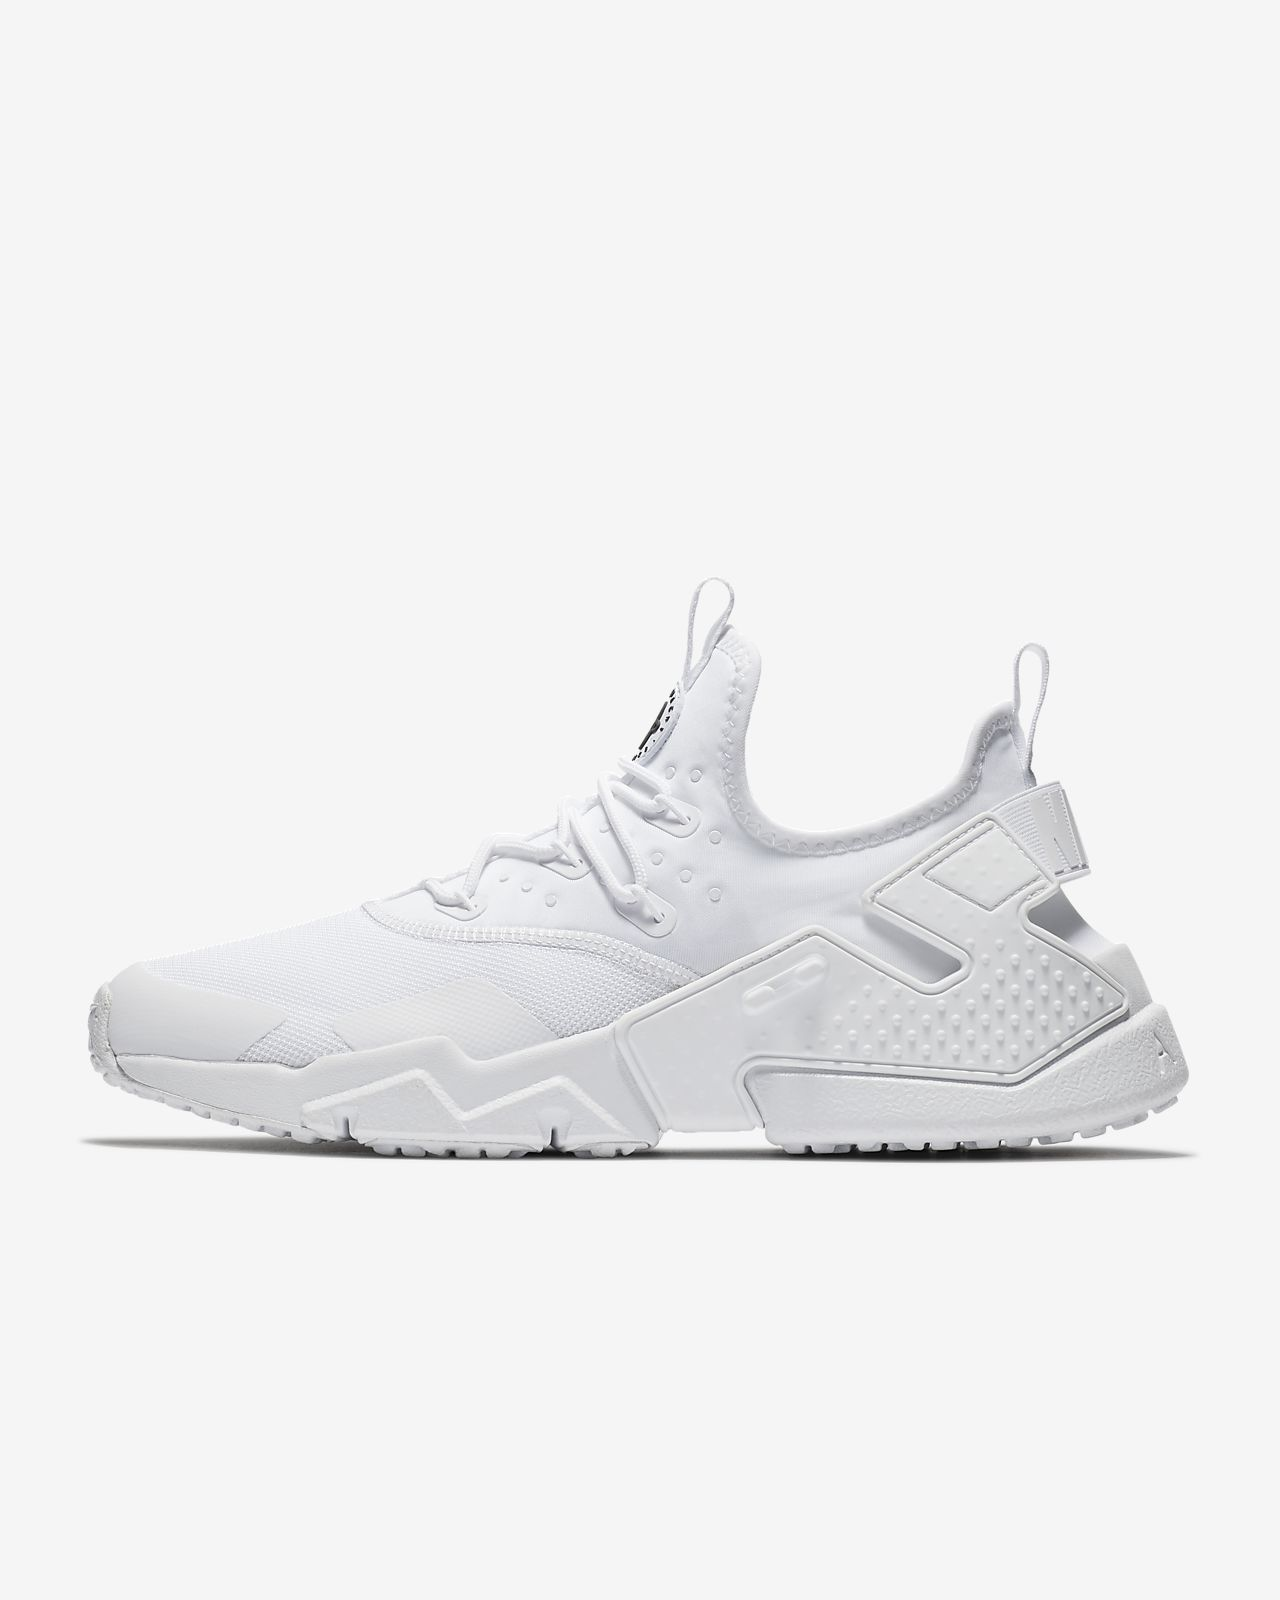 56aebc13dcb589 Nike Air Huarache Drift Men s Shoe. Nike.com